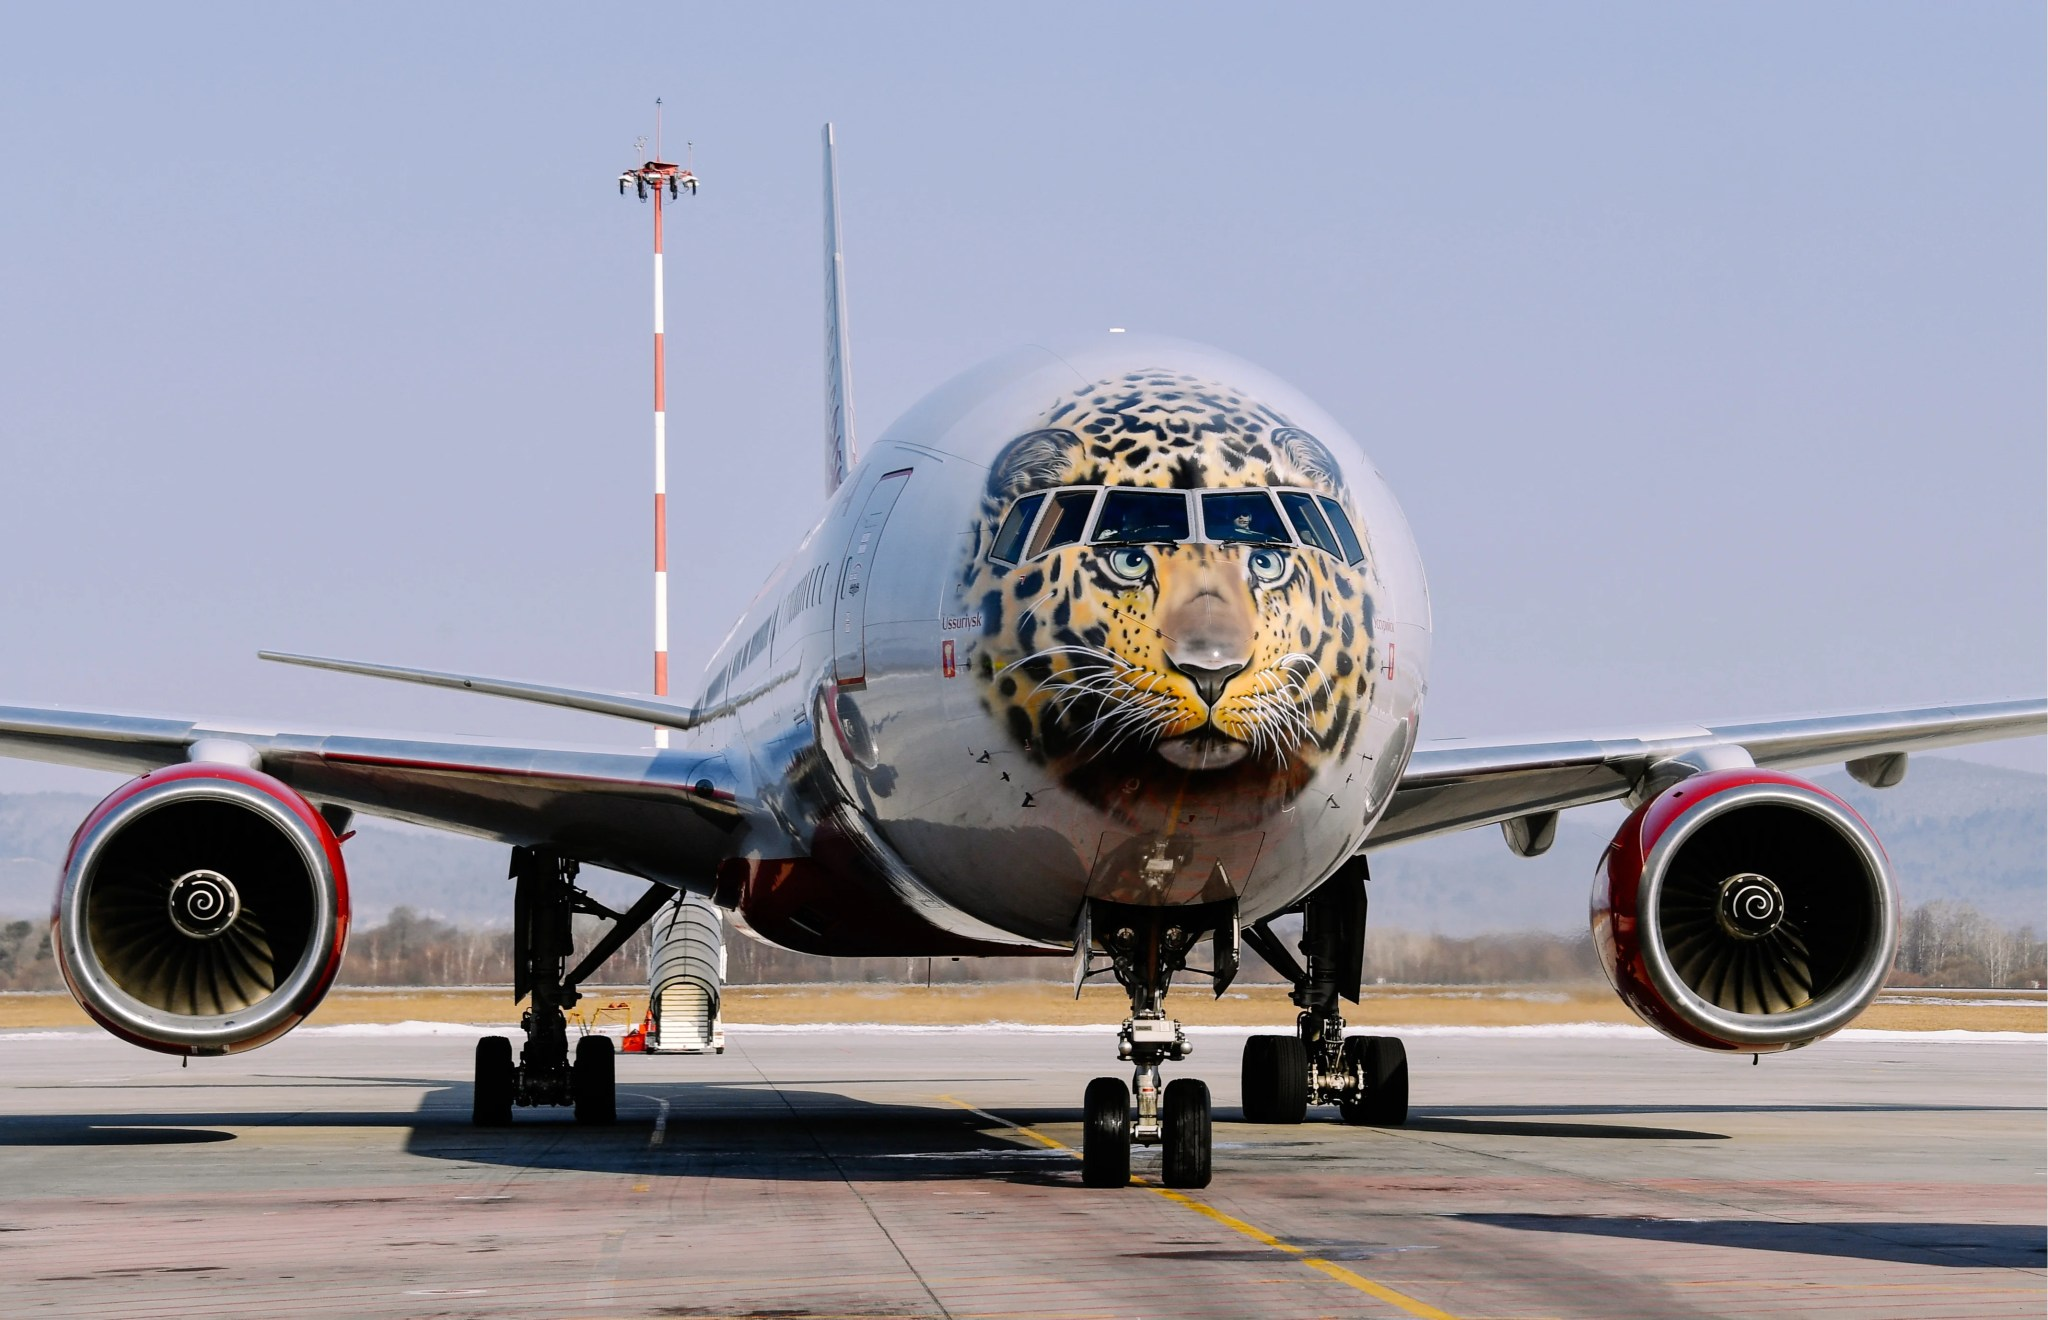 The World's Most Amazing Airline Liveries